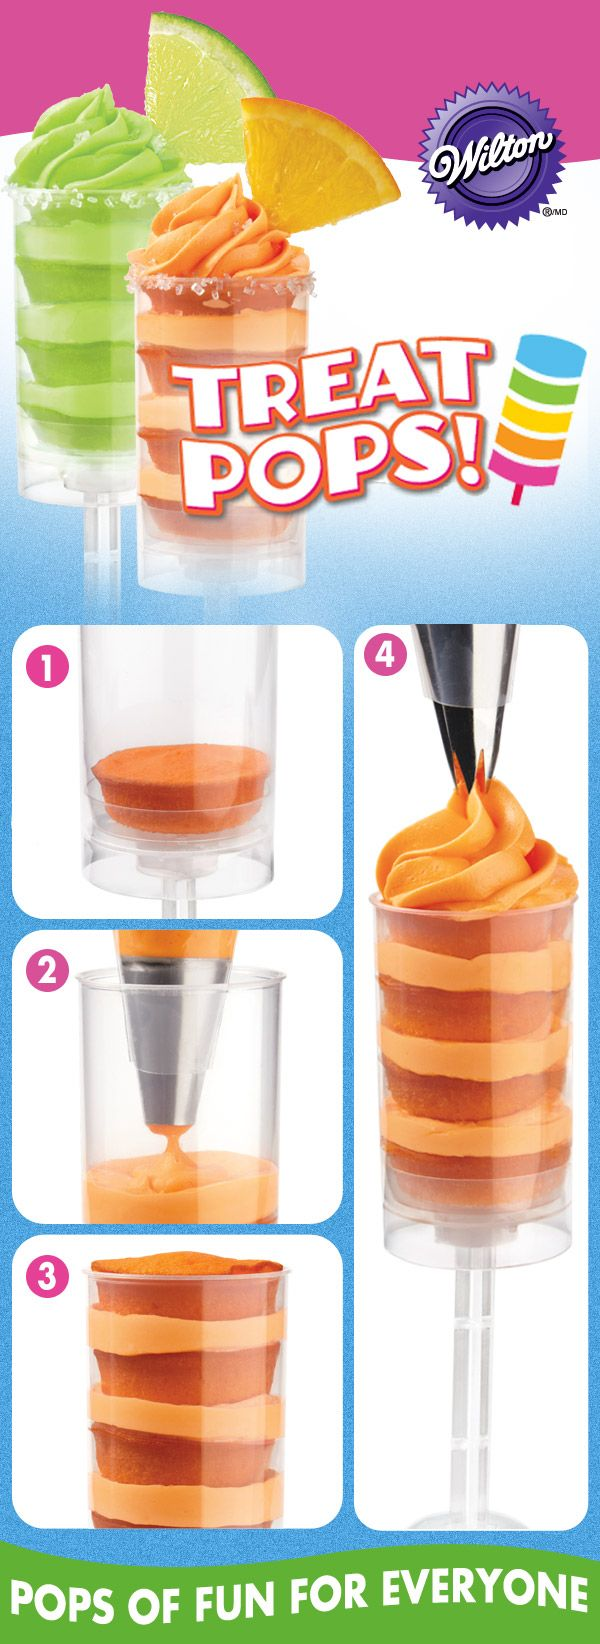 Treat Pops! Wilton makes these amazing treats easy by showing you how to create layers of sweetness in a clear, portable container.